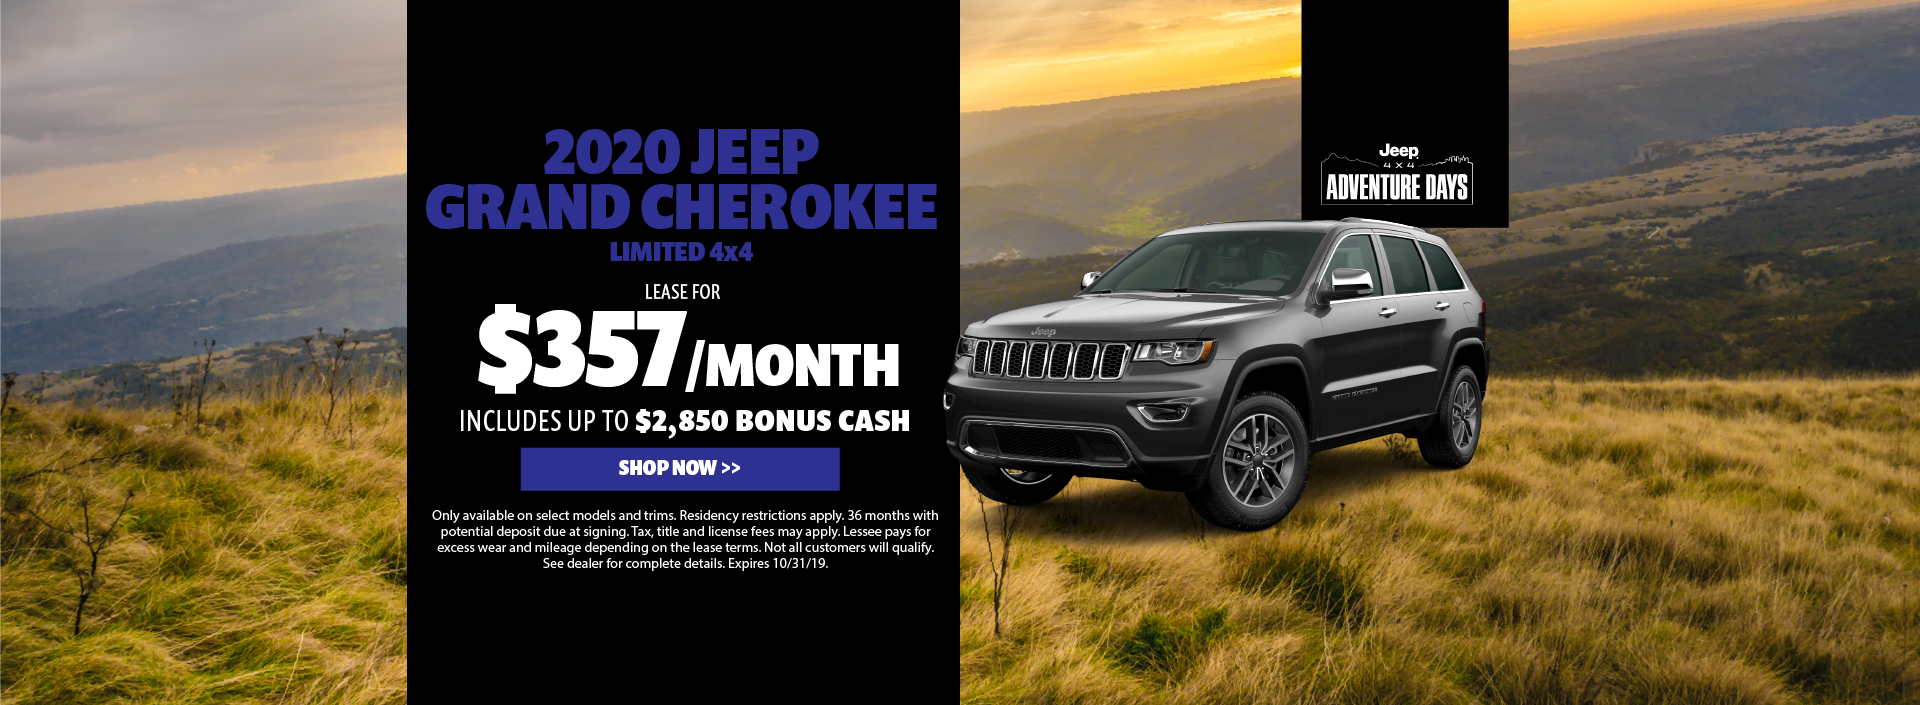 2020 Jeep Grand Cherokee Lease Offer